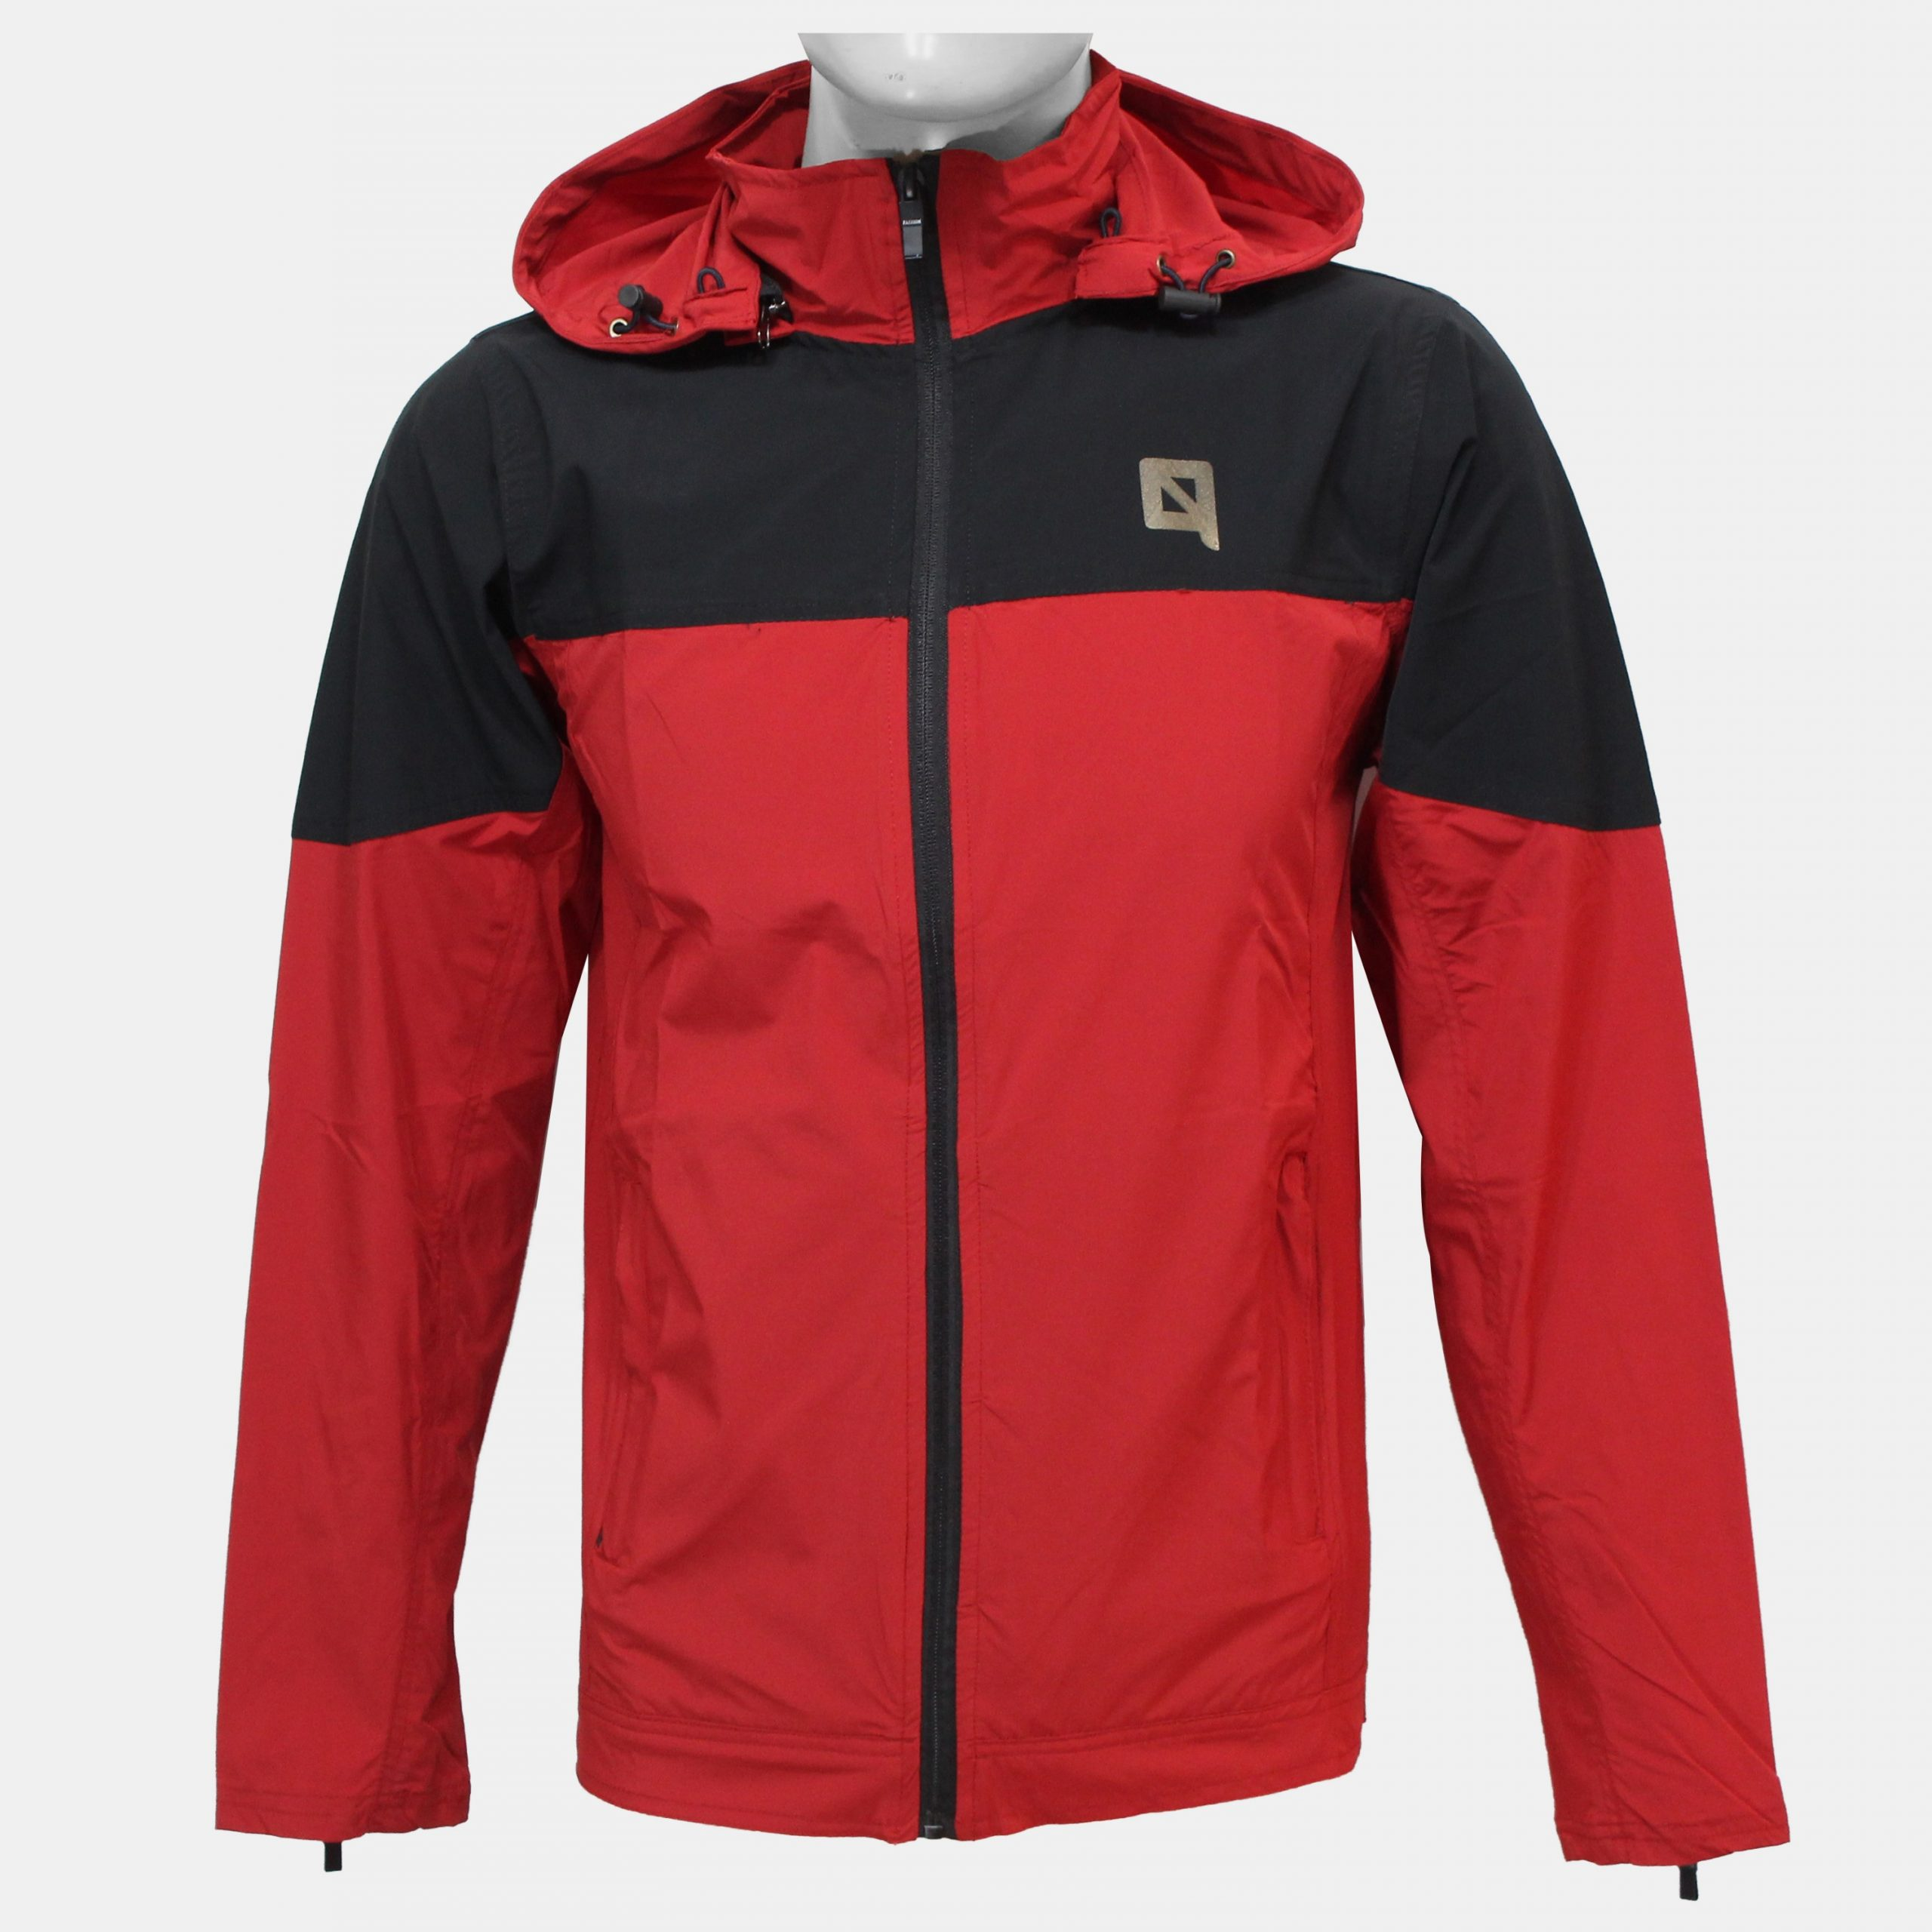 Windcheater Jacket for Men